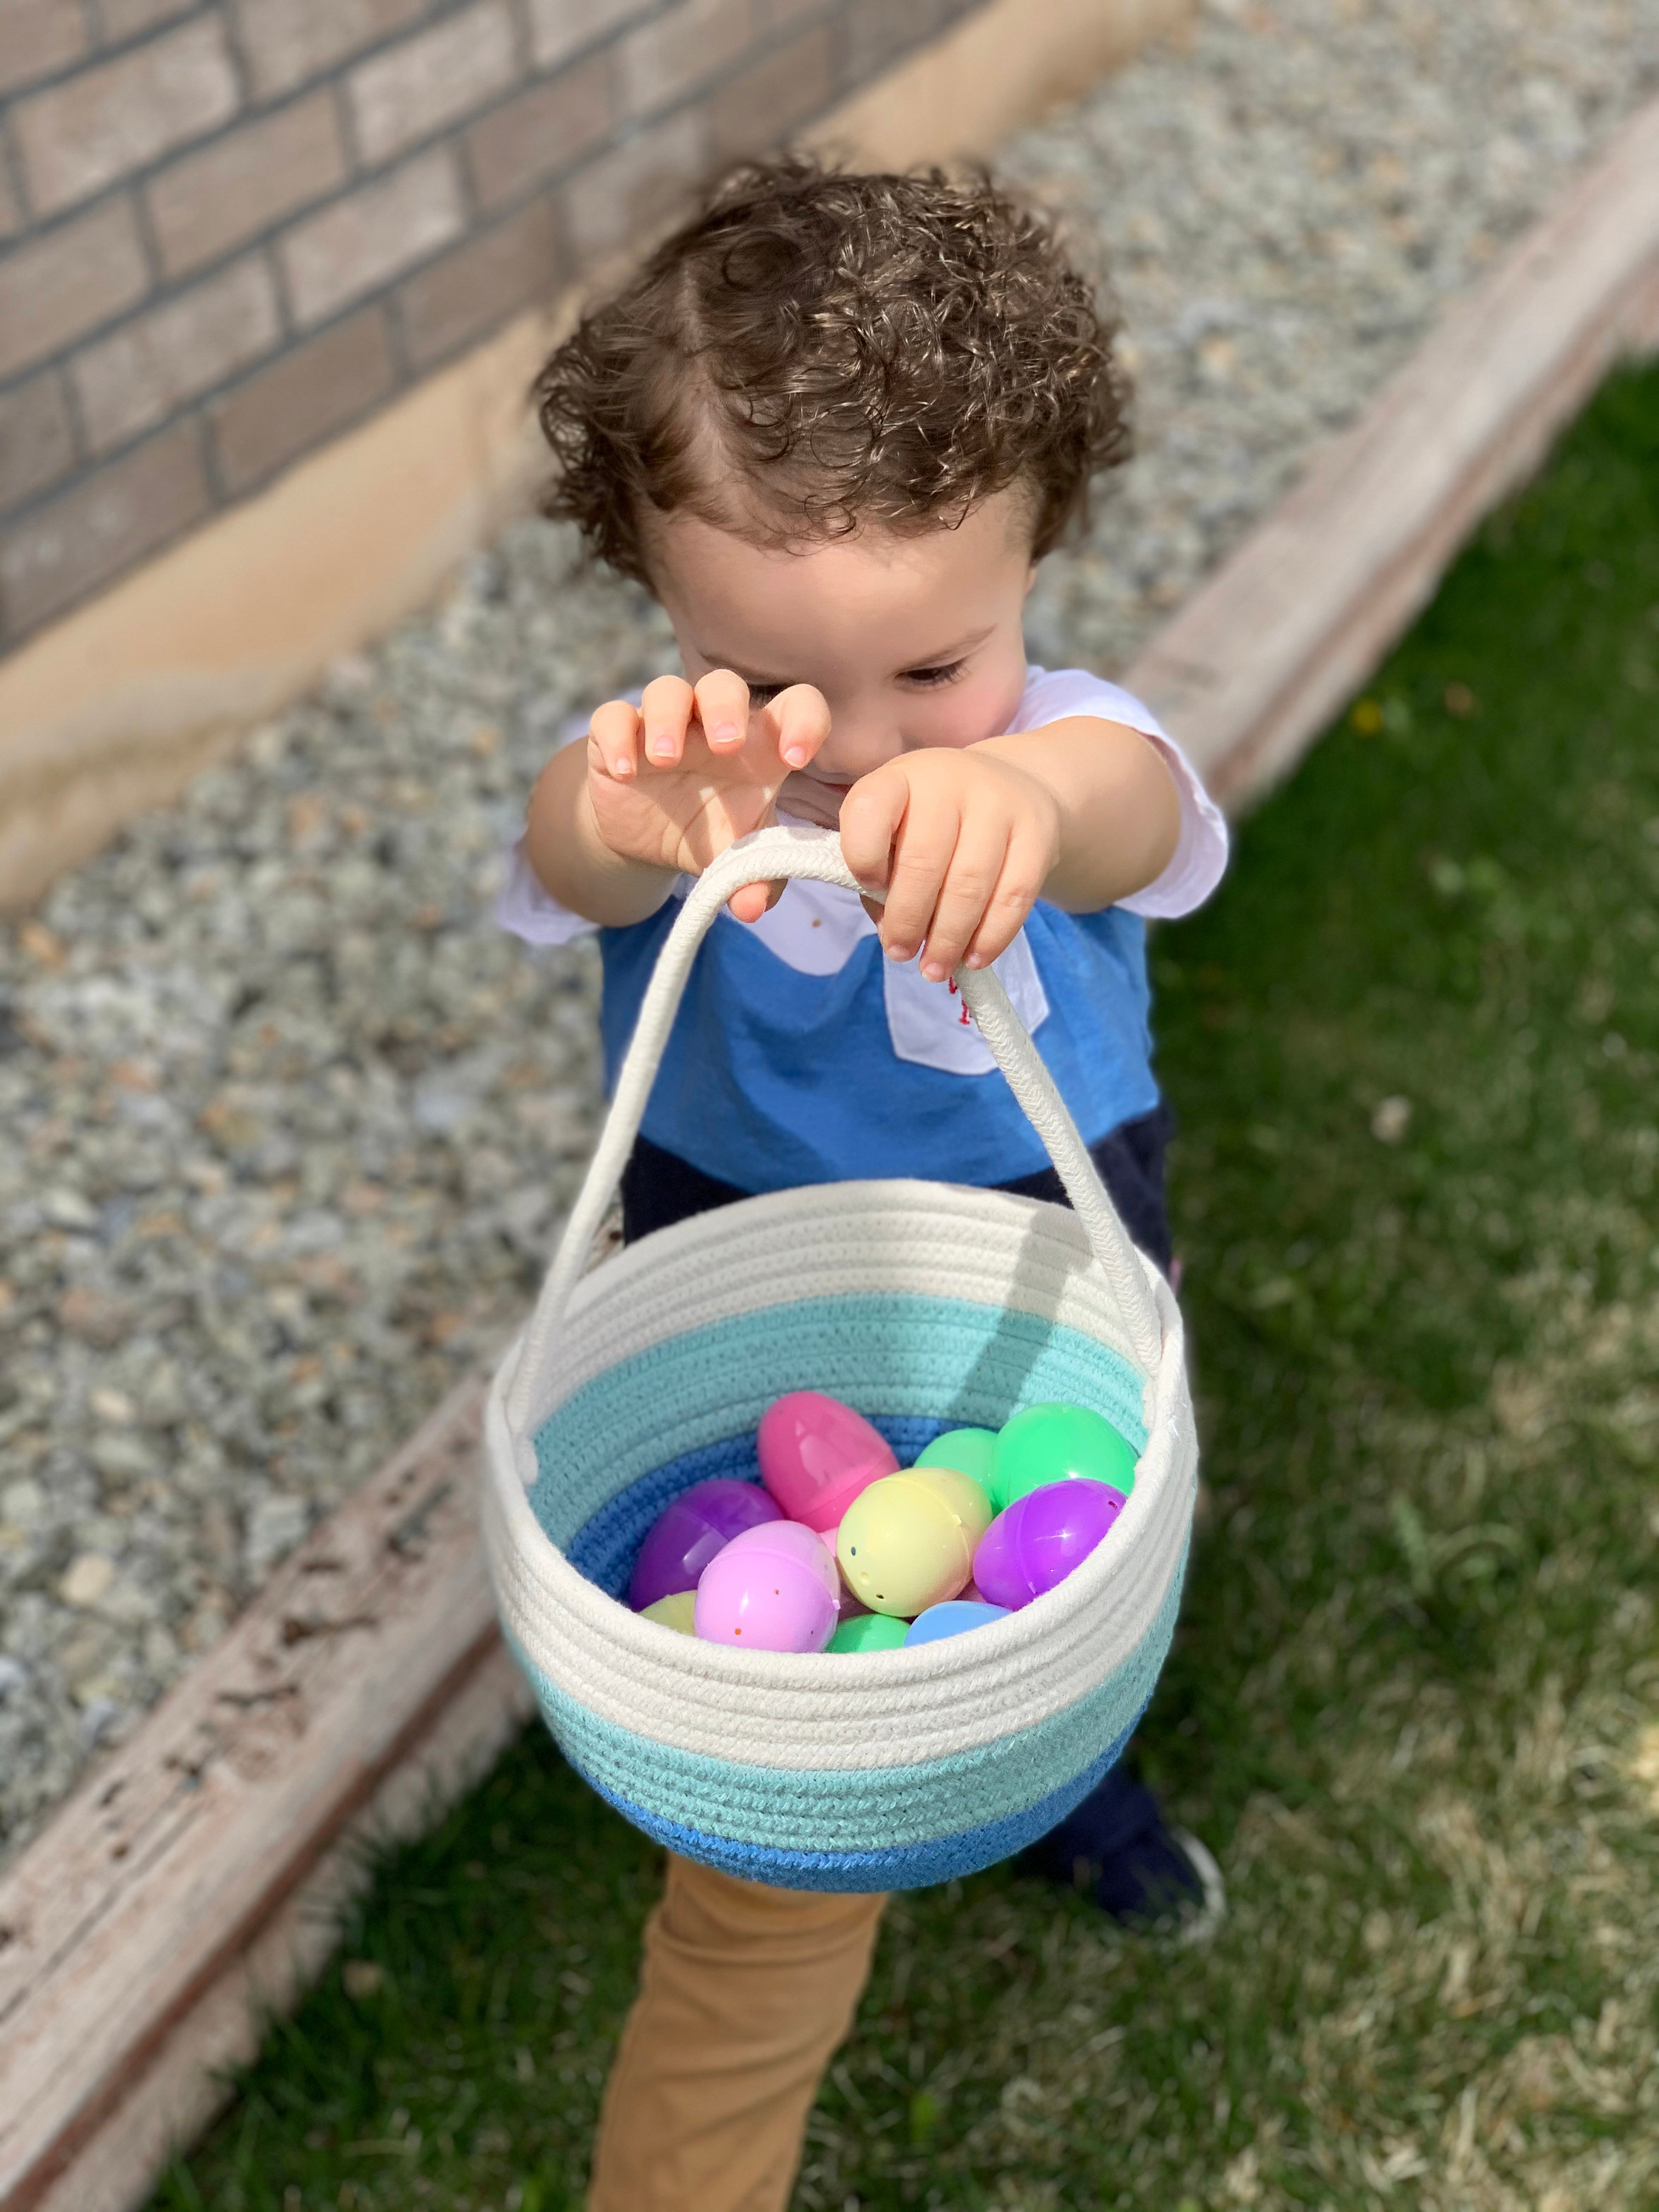 Easter Celebration at Home + Secret Basket Project a joyful service project and ideas for a creating a simple Easter celebration with your family this year! by cookingwithruthie.com